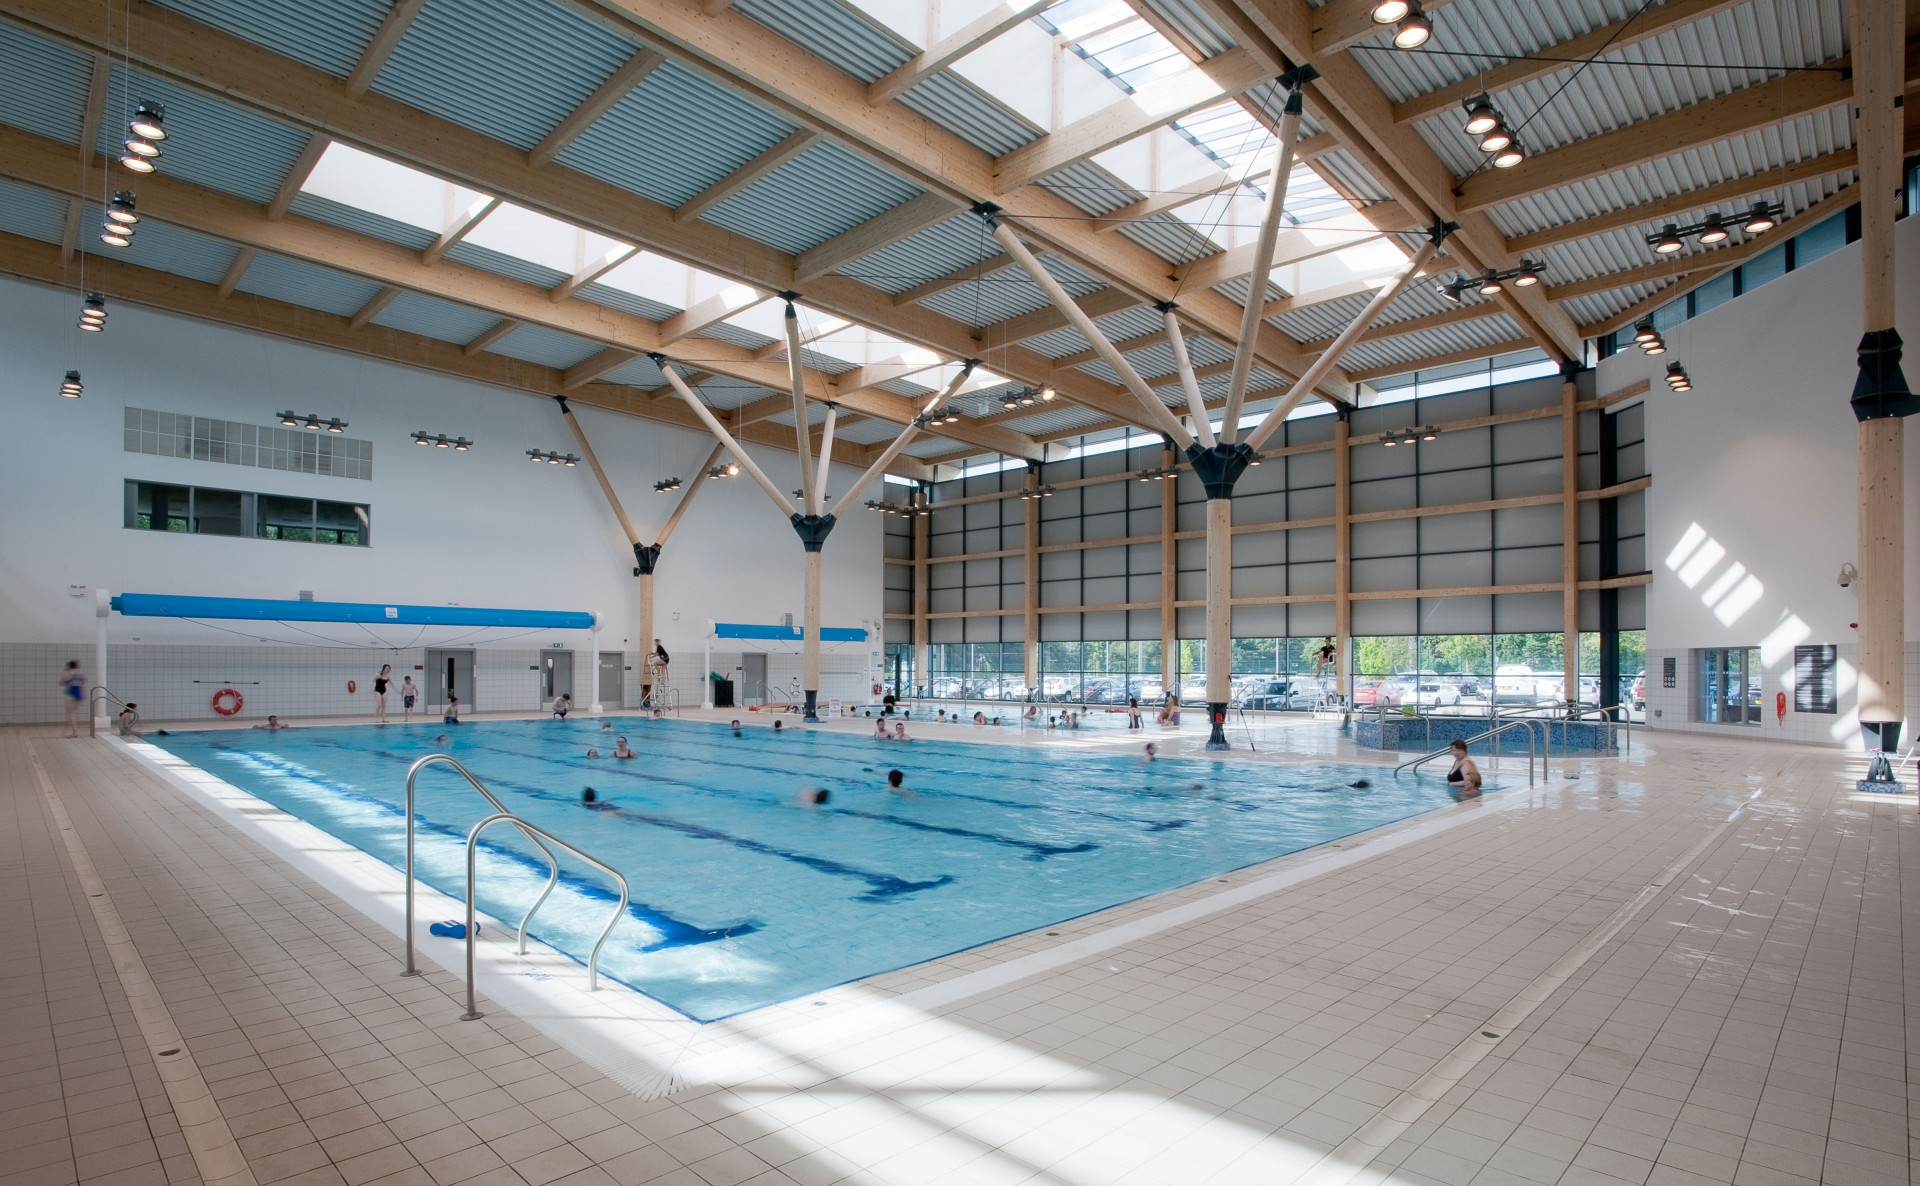 Omagh leisure complex fermanagh omagh district council for Uses for old swimming pools